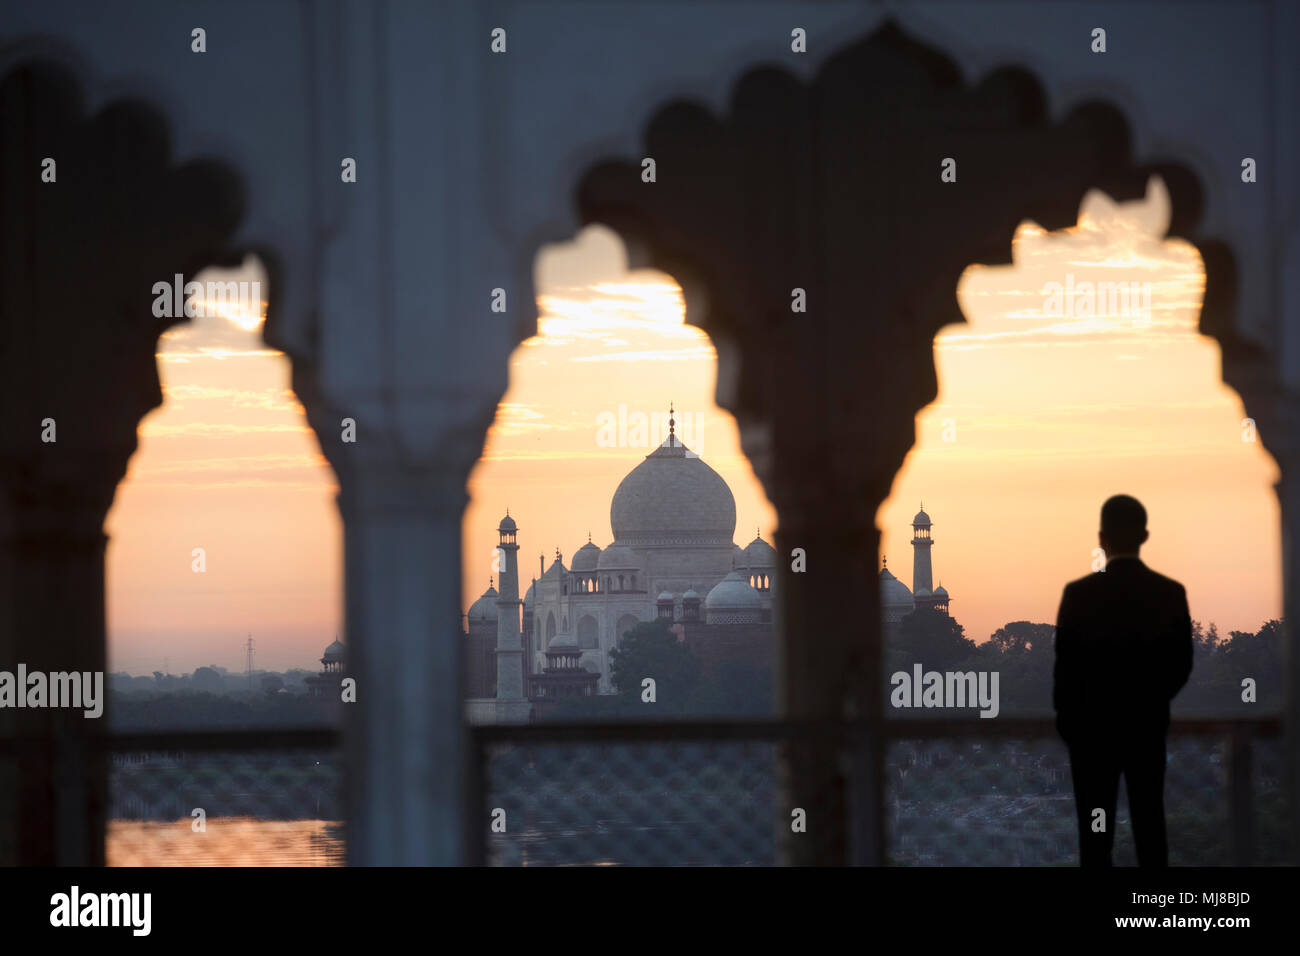 Rear view of man standing underneath scalloped arch on balcony at sunset, Taj Mahal palace and mausoleum in the distance. - Stock Image